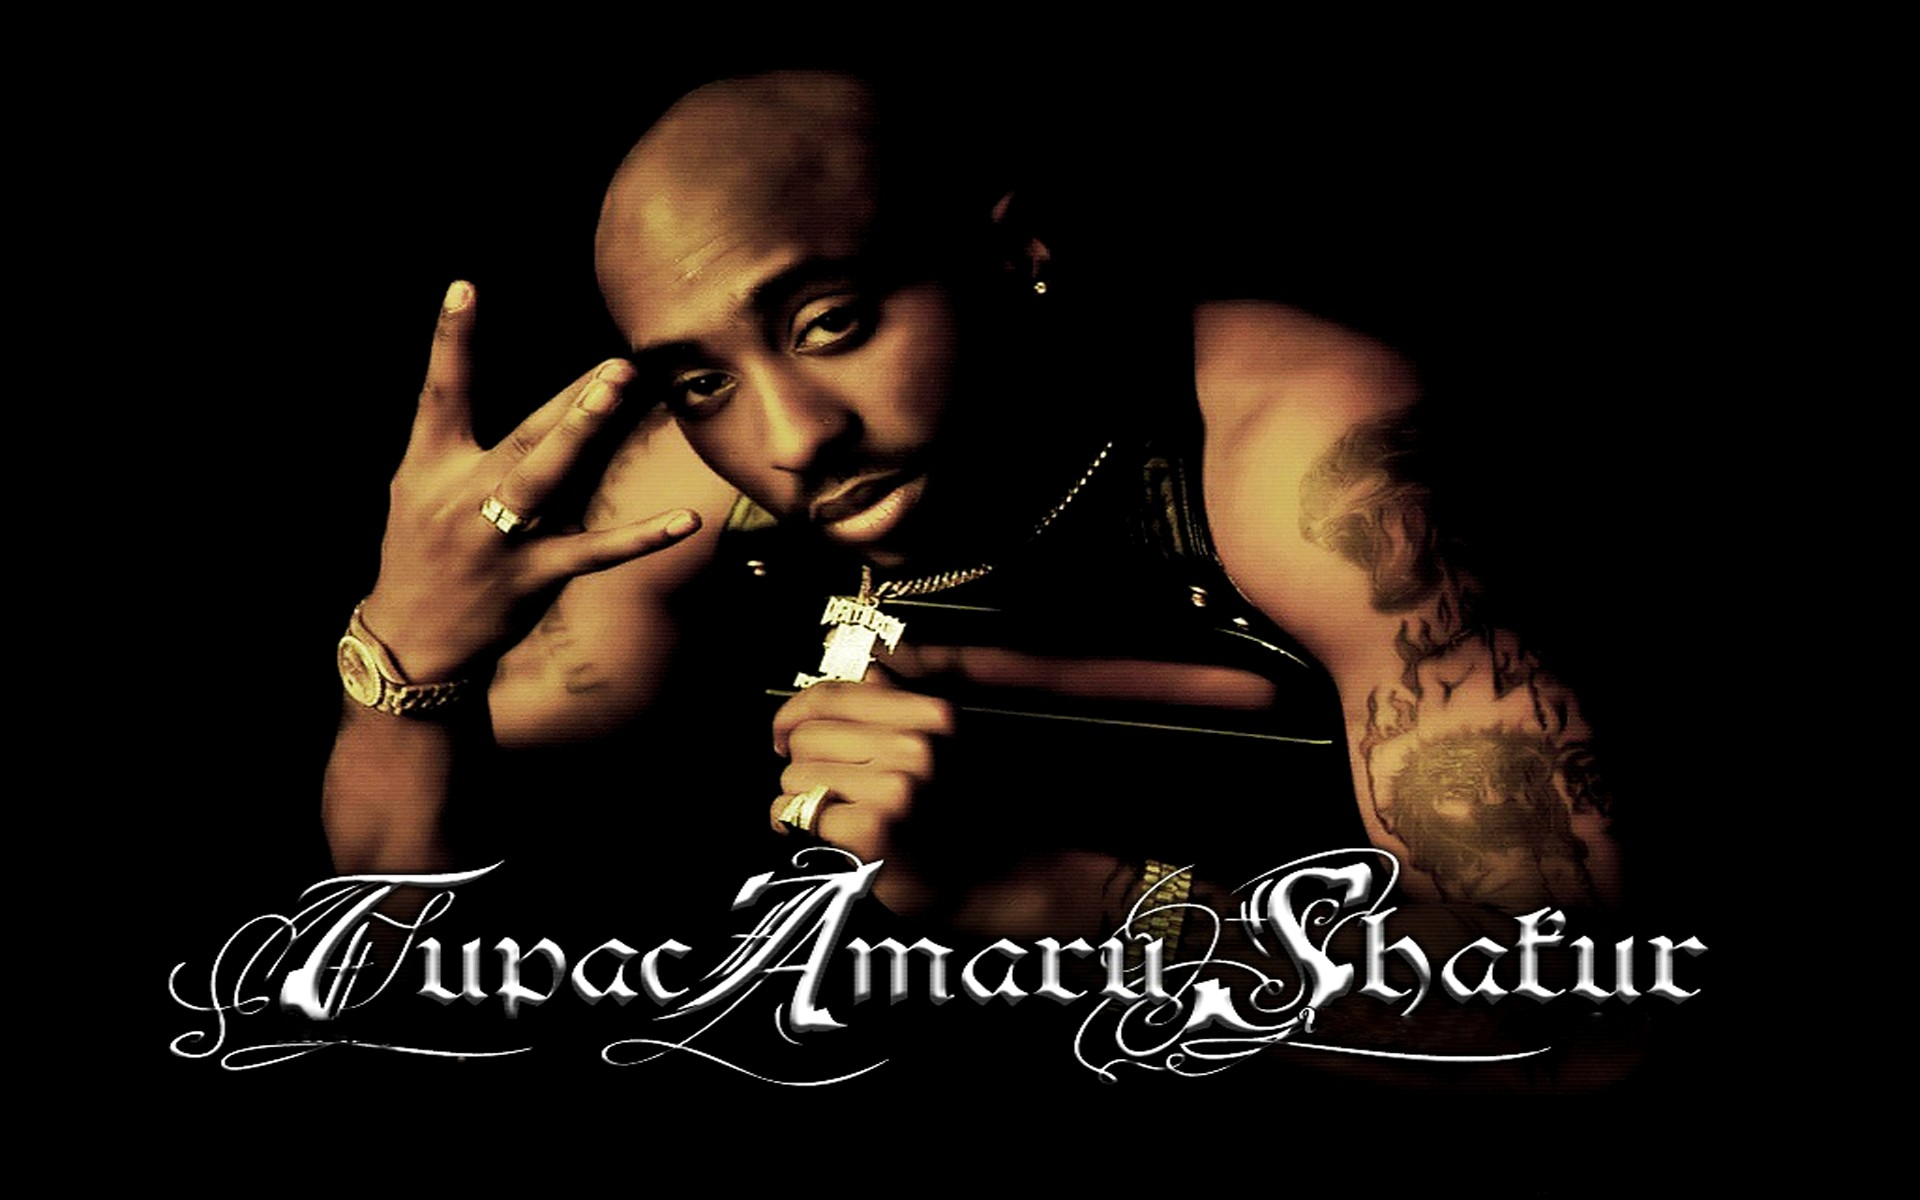 gangsta rap and sexism essay Annoitated bibliography (essay sample)  sexism and misogyny: who takes the rap misogyny, gangsta rap, and the piano description:.